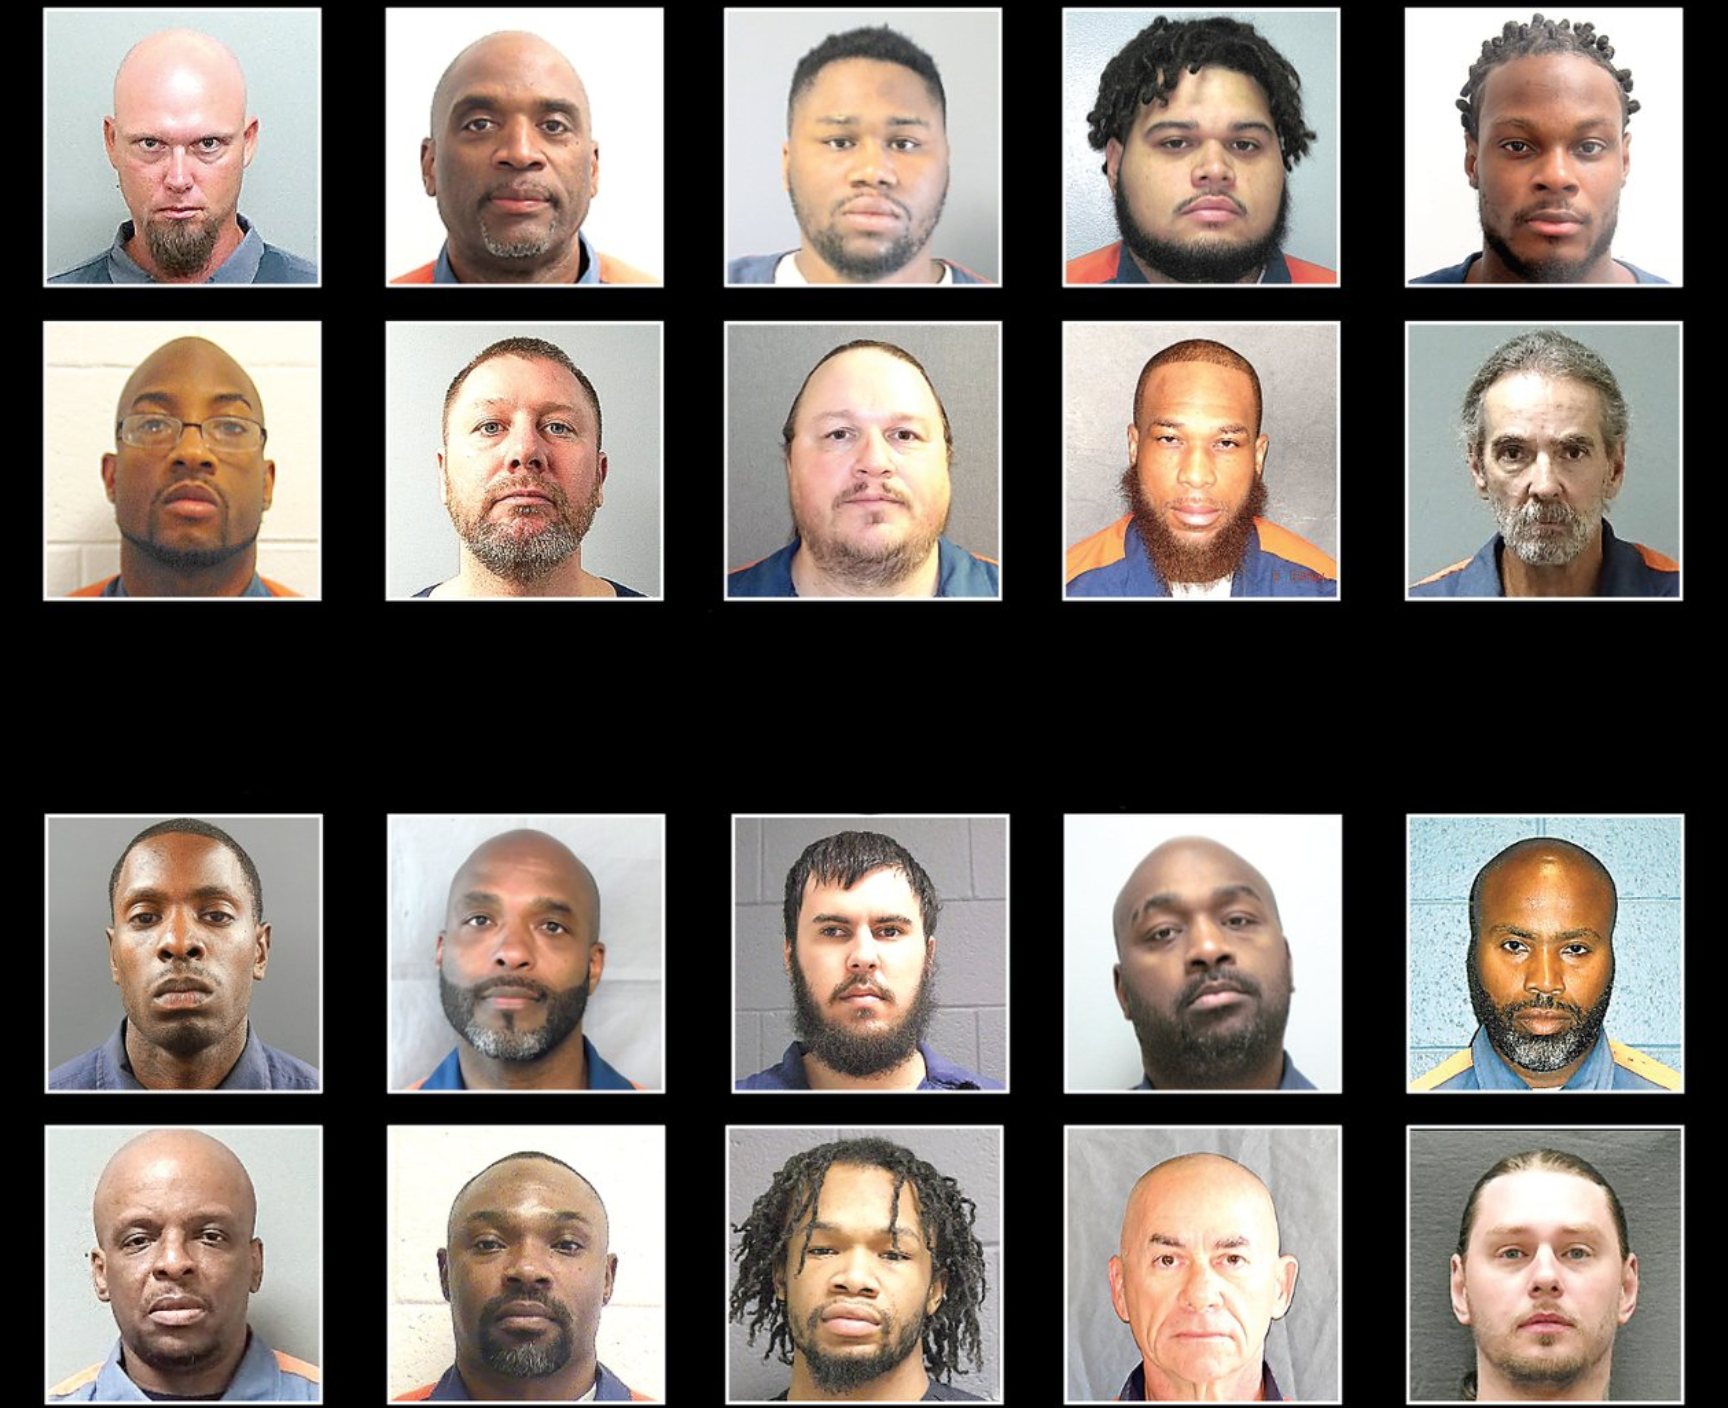 Michigan prosecutor looks to release 90 convicted murderers serving life sentences